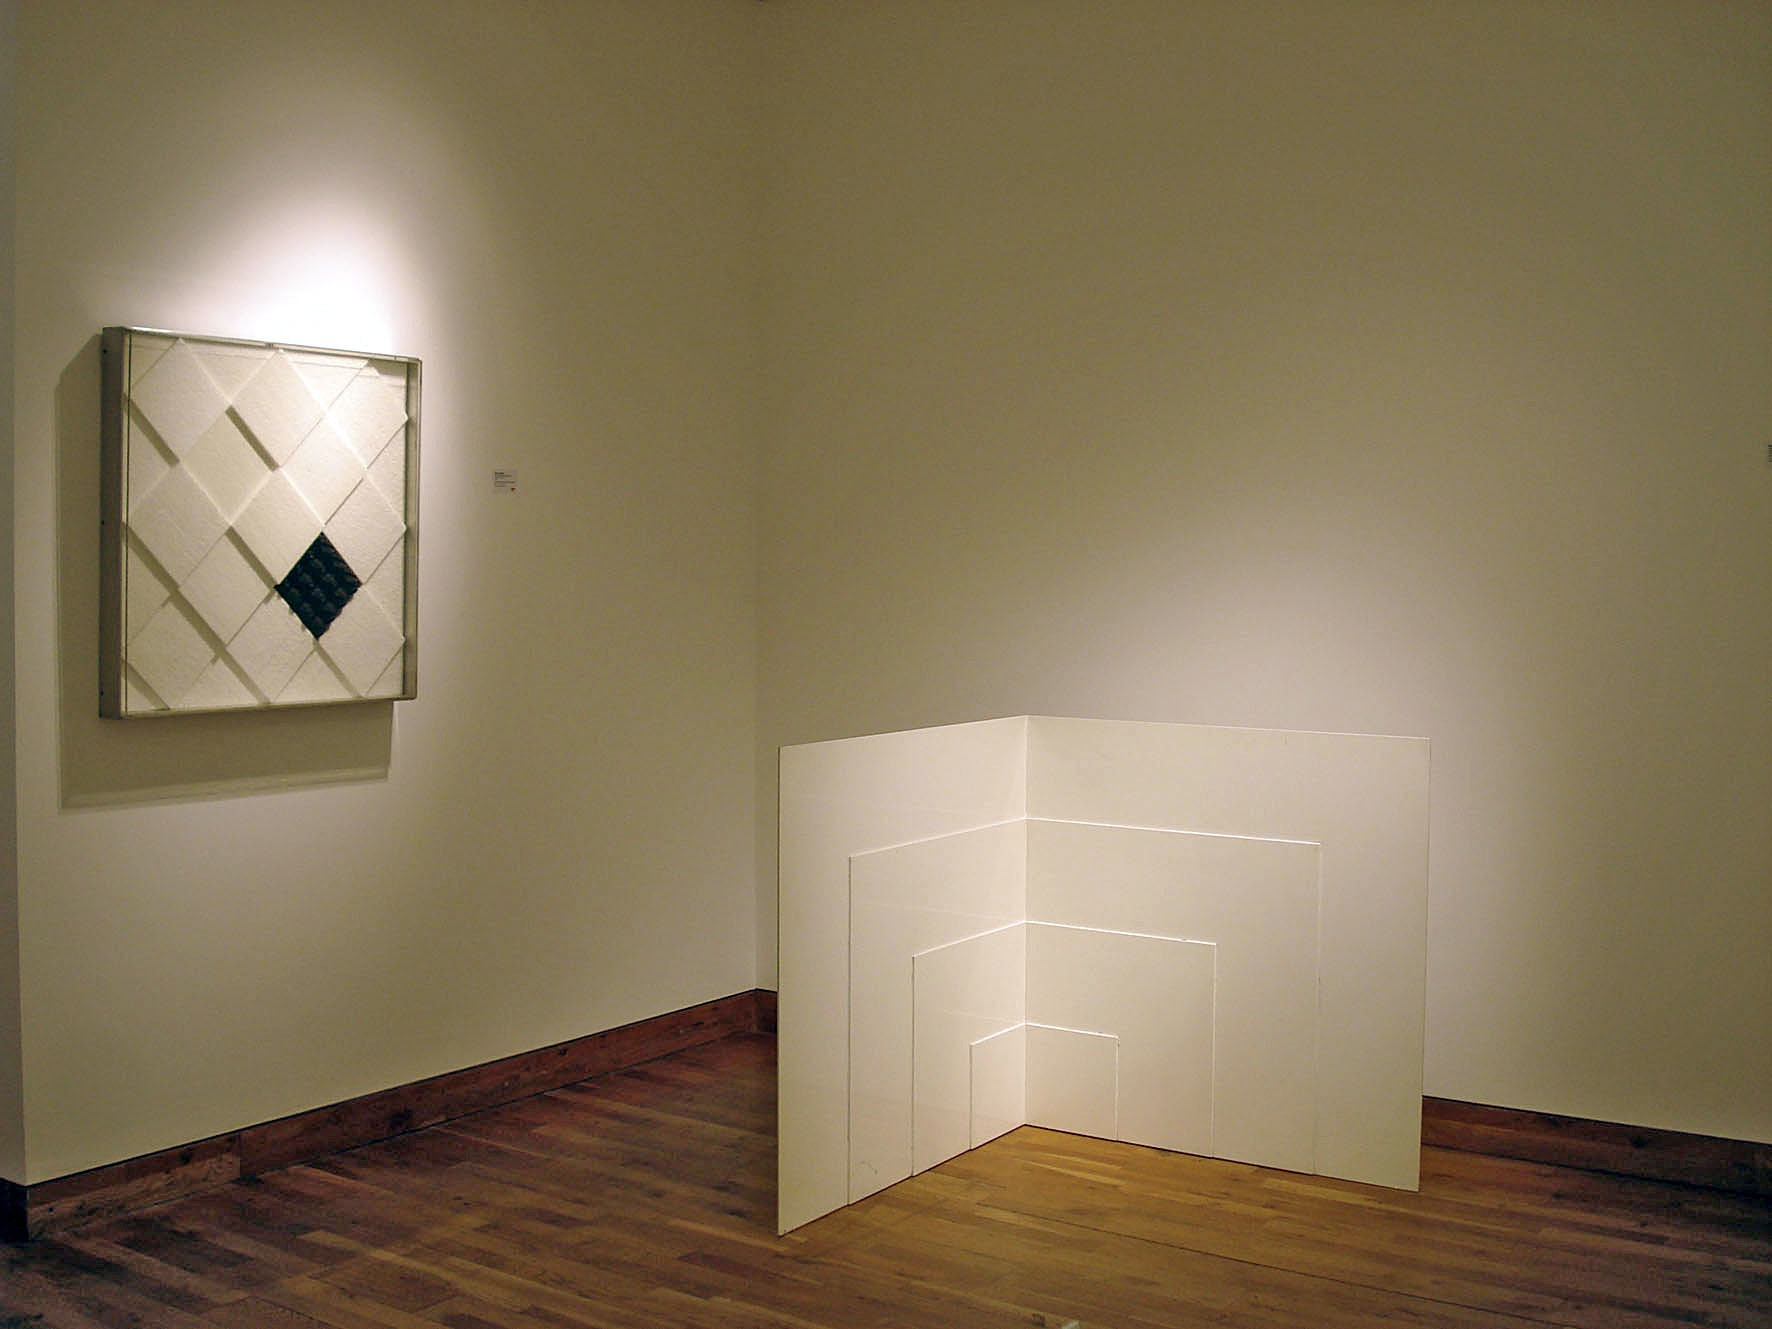 """<span class=""""link fancybox-details-link""""><a href=""""/exhibitions/105/works/image_standalone419/"""">View Detail Page</a></span><p>NICOLA CARRINO 